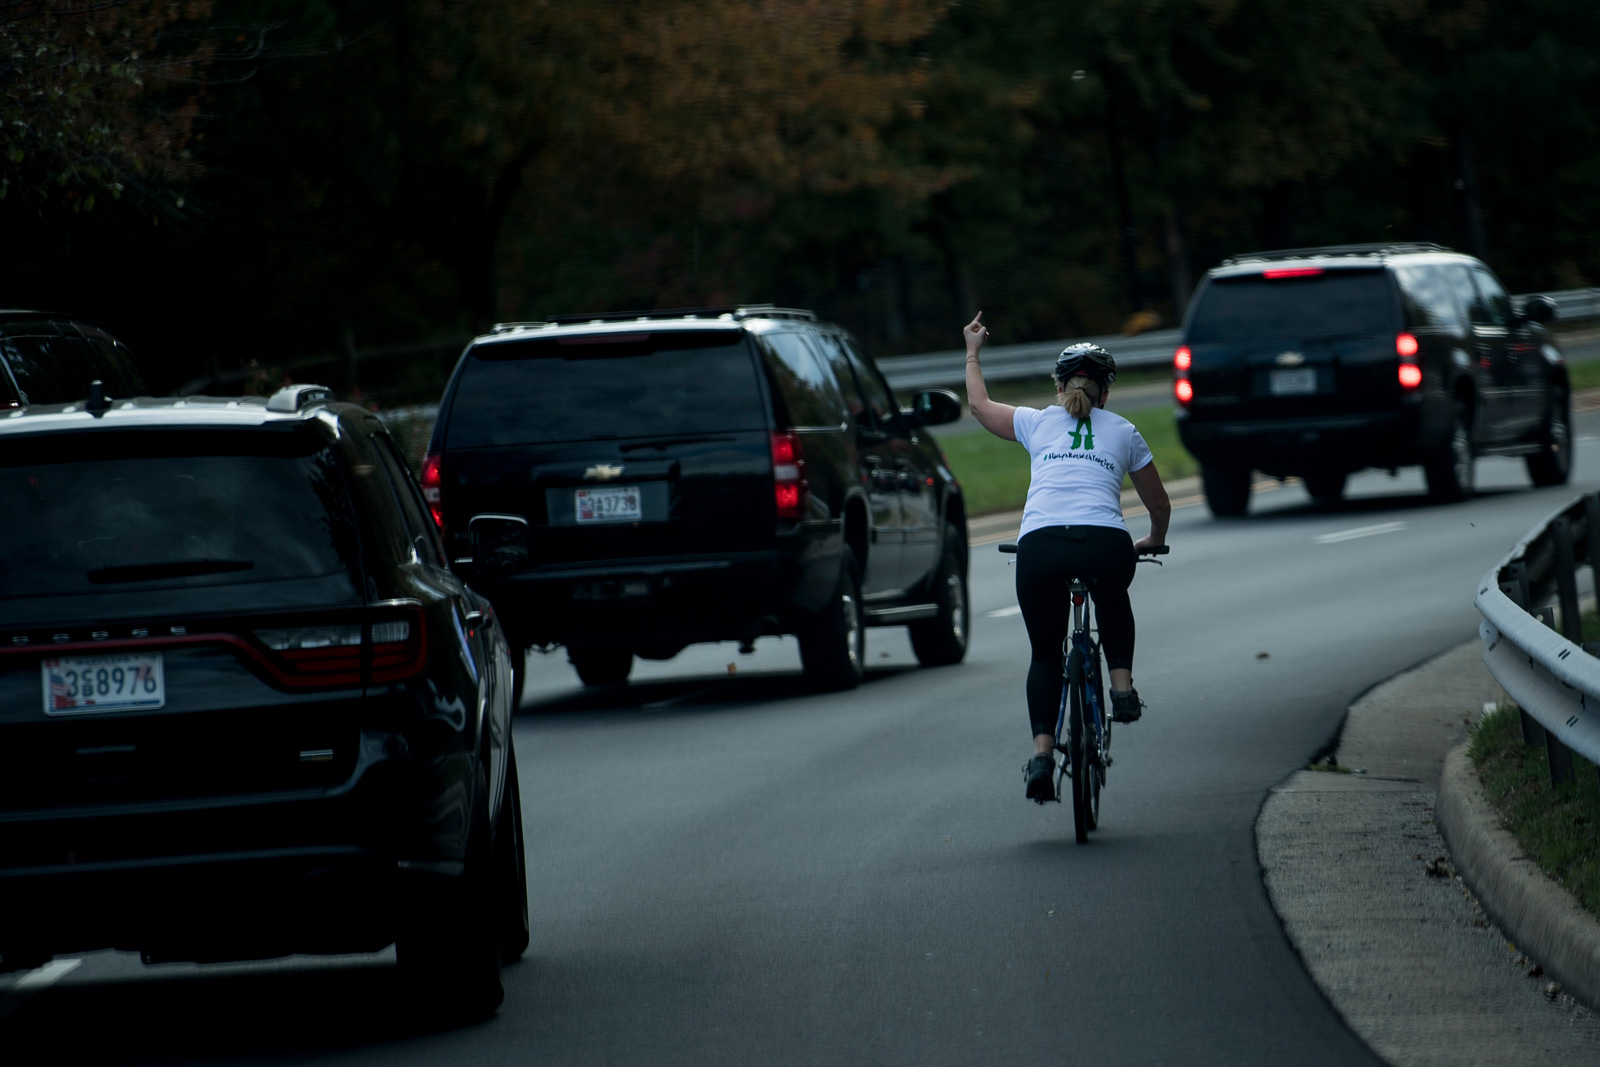 """Juli Briskman gesturing at President Donald Trump's motorcade, Sterling, Virginia, October 28, 2017. Briskman was subsequently fired by her employer over the incident but expressed no regret: """"I'm angry about where our country is right now.… This was an opportunity for me to say something."""""""